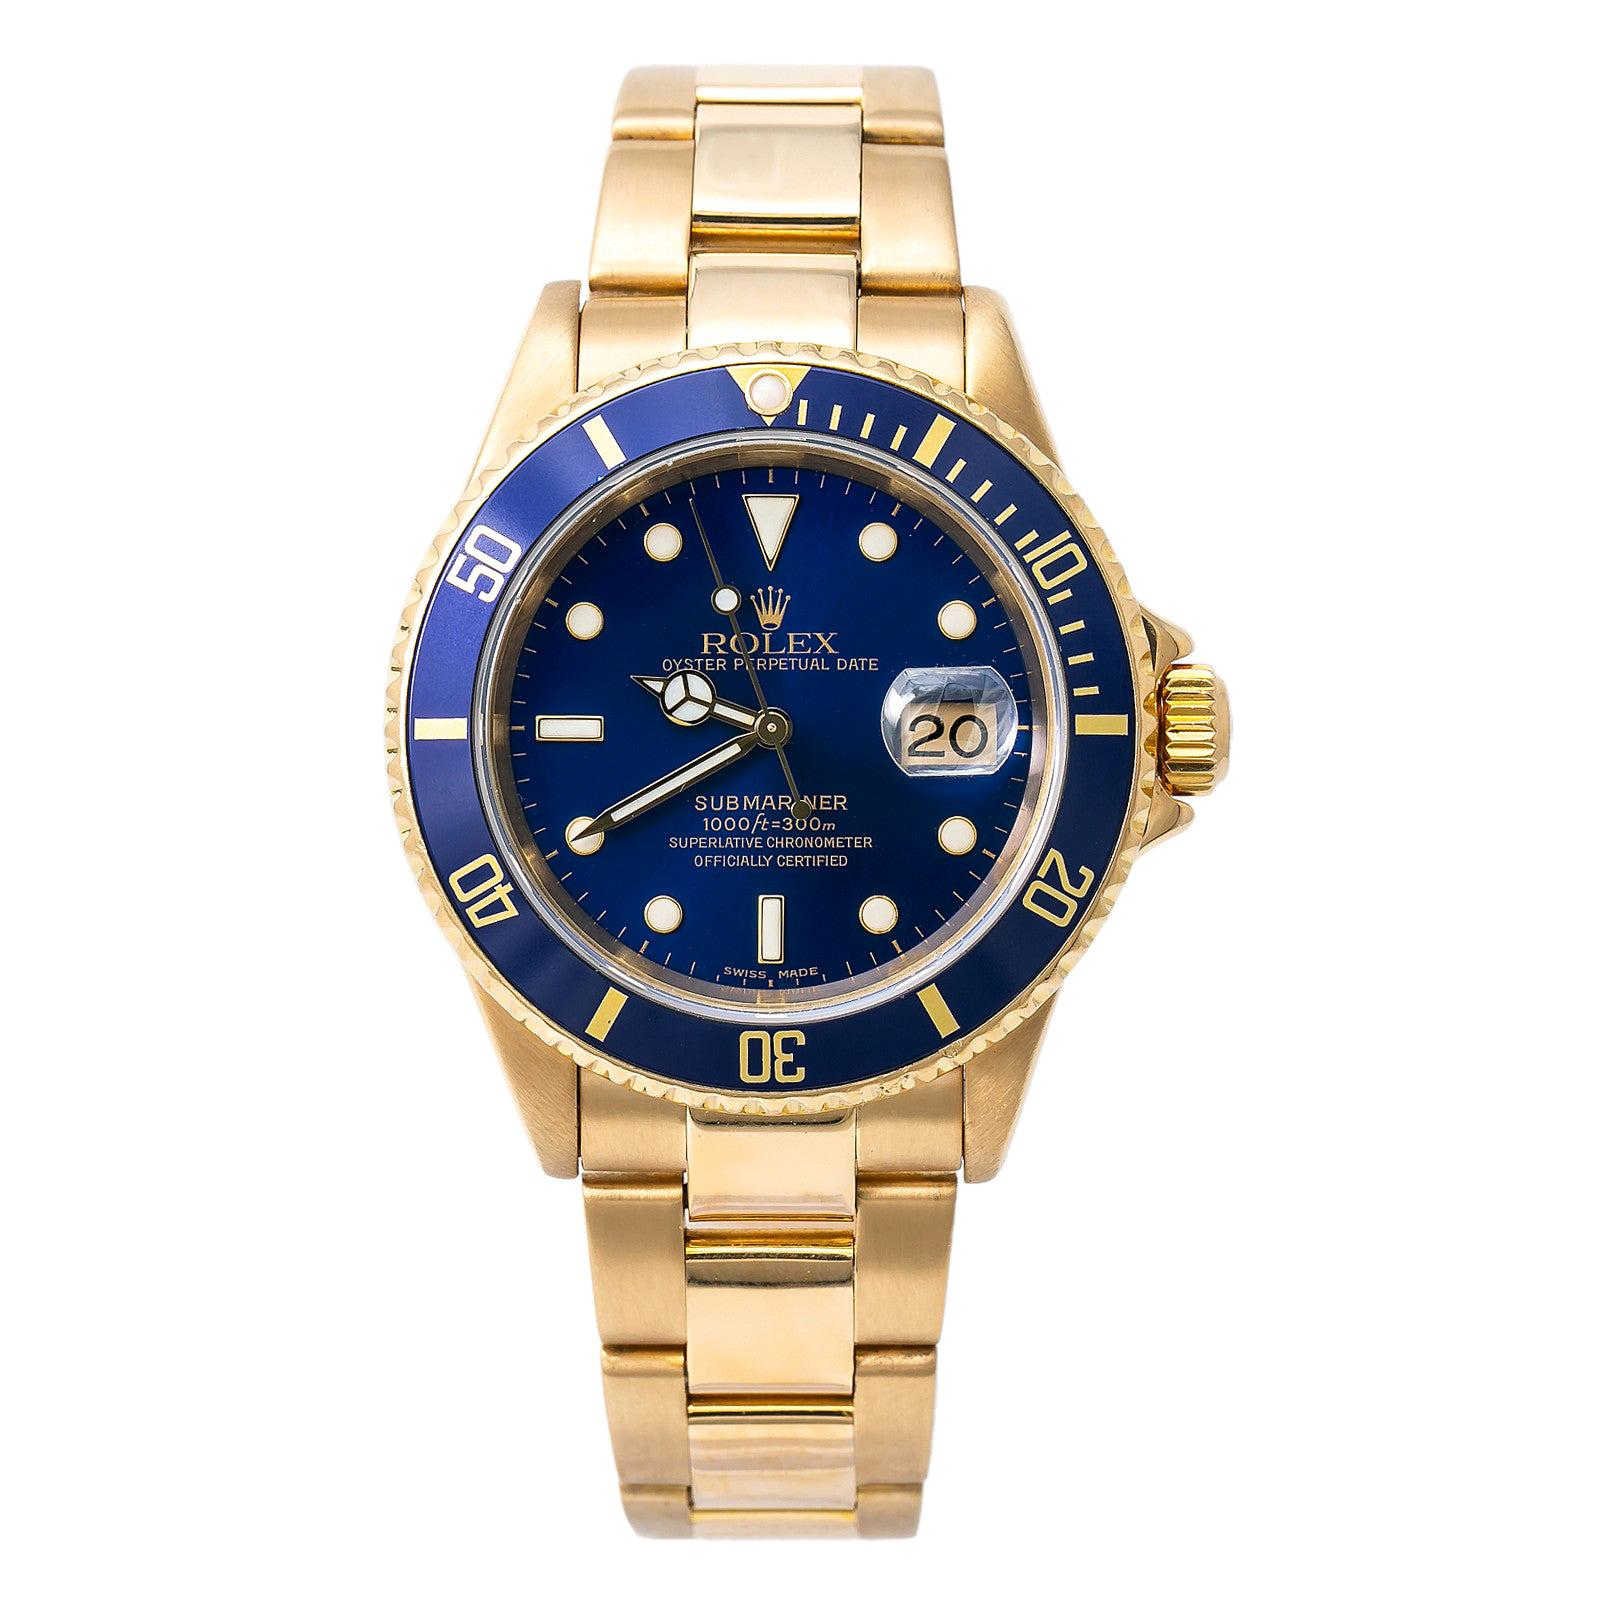 Rolex Submariner 16618, Silver Dial, Certified and Warranty